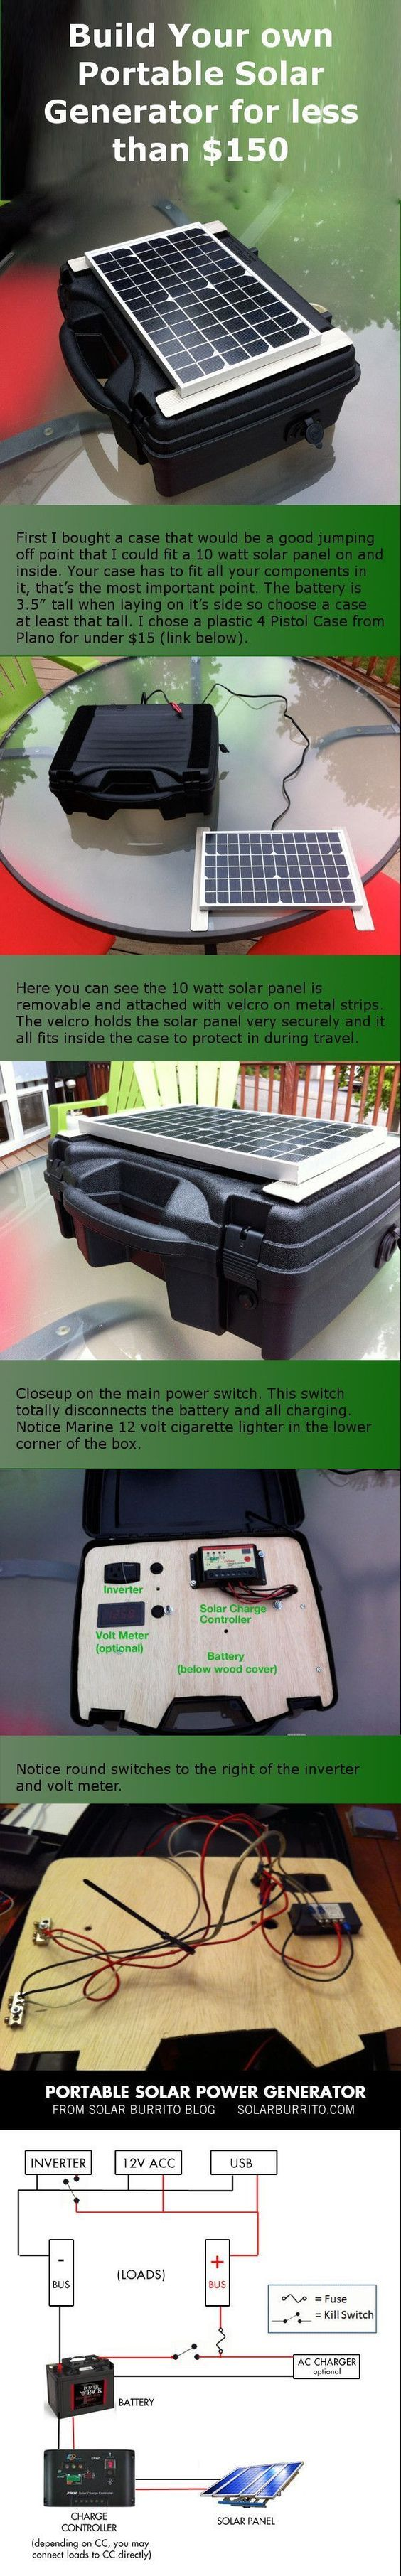 How To Build Your Own Solar Power Generator For Under $150 Pictures, Photos, and Images for Facebook, Tumblr, Pinterest, and Twitter